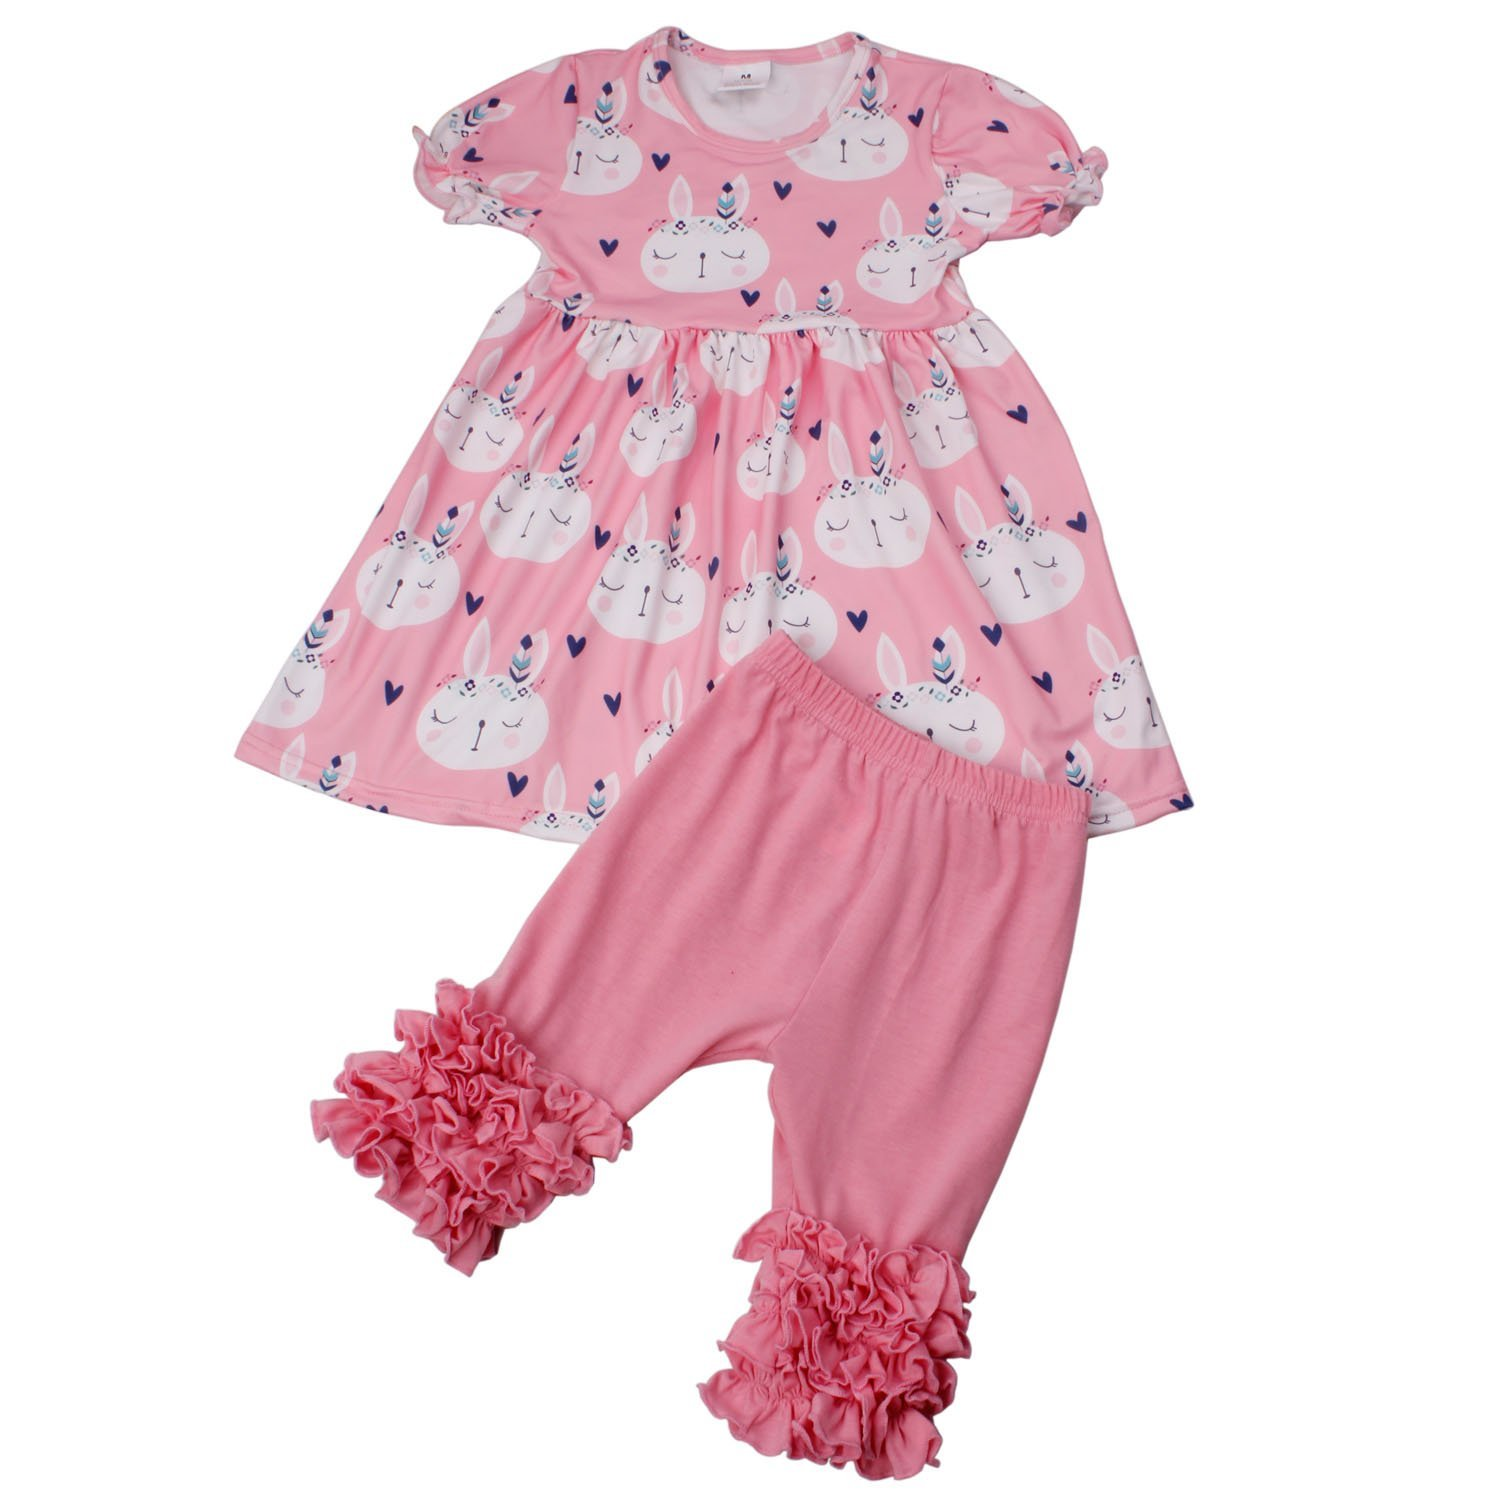 0292e446ba Get Quotations · Yliyang Baby Girls Summer Outfits Rabbit Print Ruffle  Dress Pants Boutique Outfits Clothing